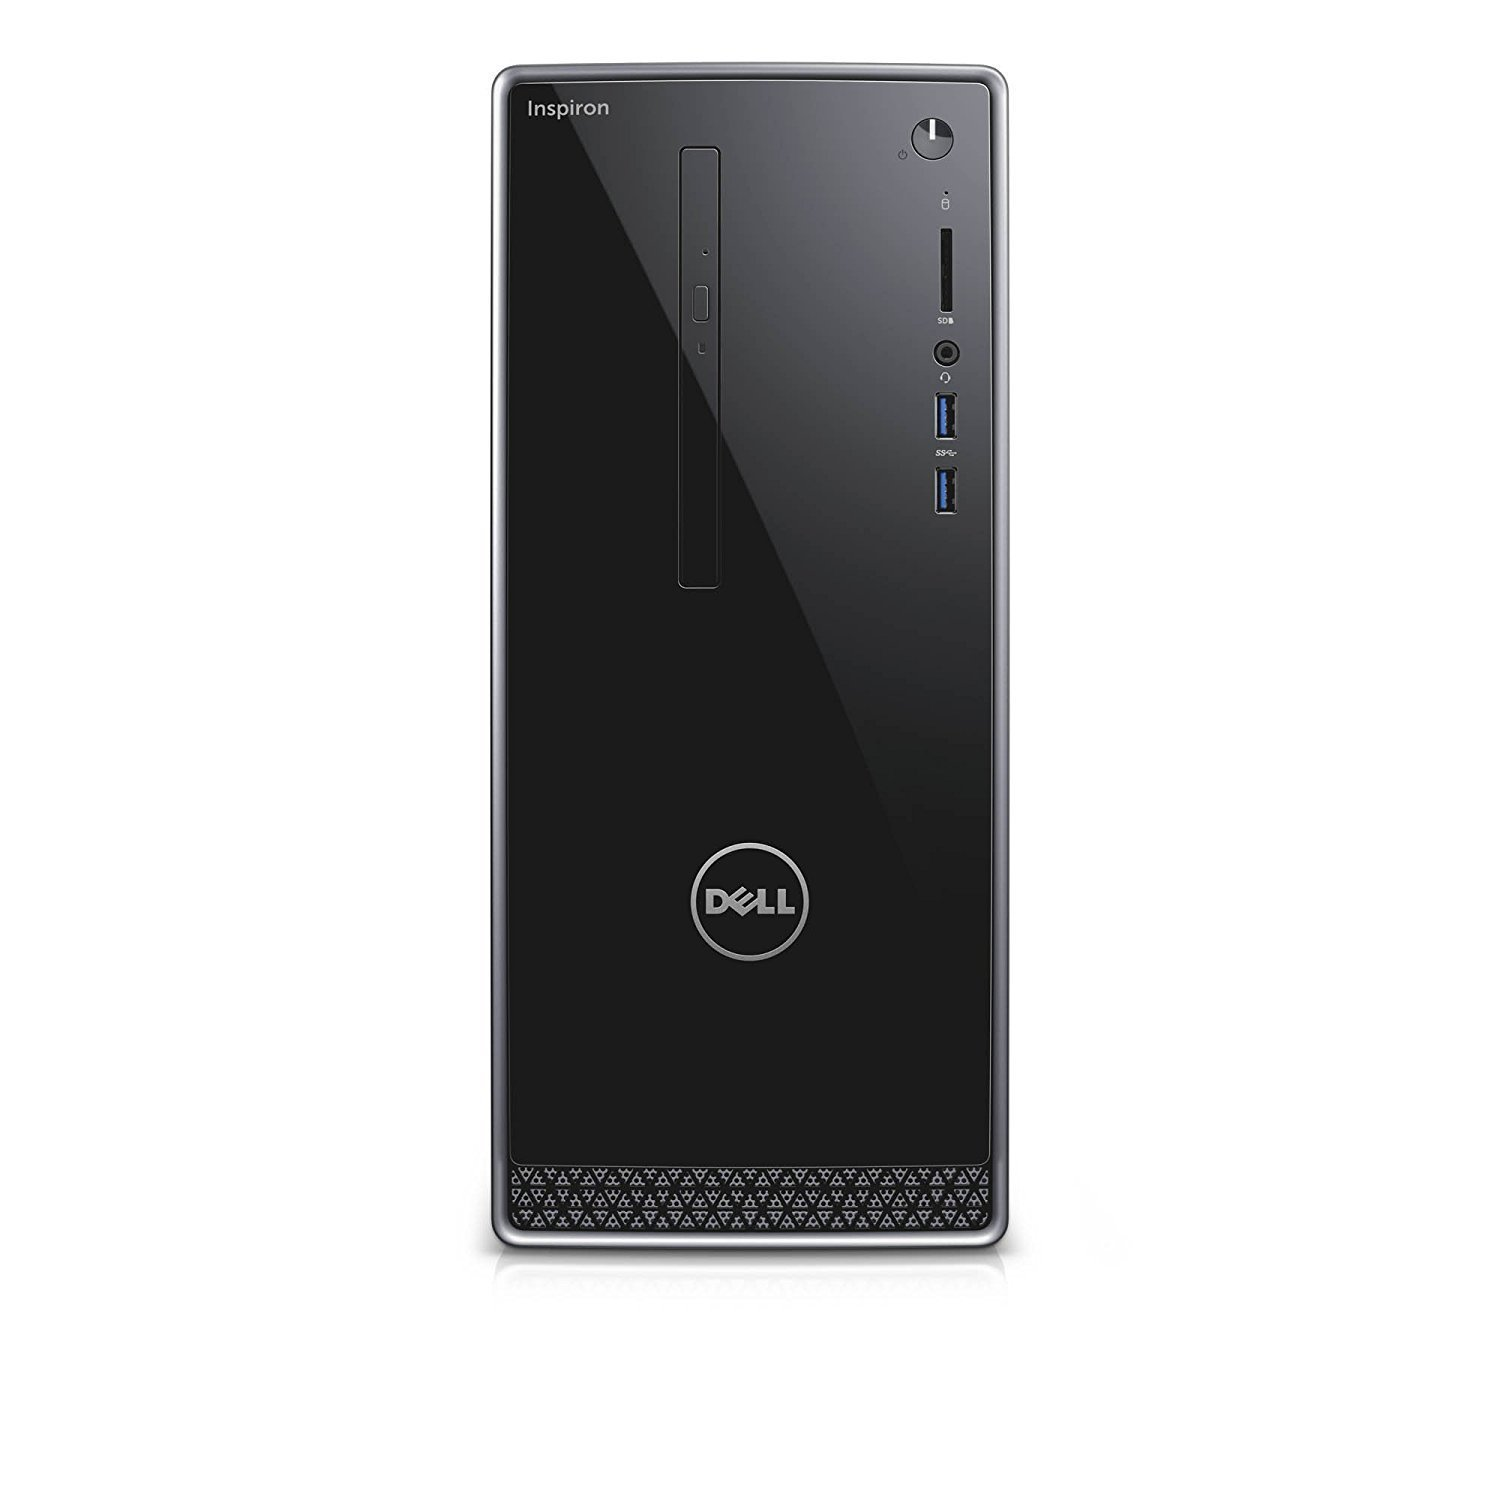 Dell Inspiron i3668 Desktop - 7th Generation Intel Core i7-7700 Processor up to 4.2 GHz, 16GB DDR4 Memory, 512GB Solid State Drive, 4GB Nvidia GeForce GTX 745, DVD Burner, Windows 10 Pro